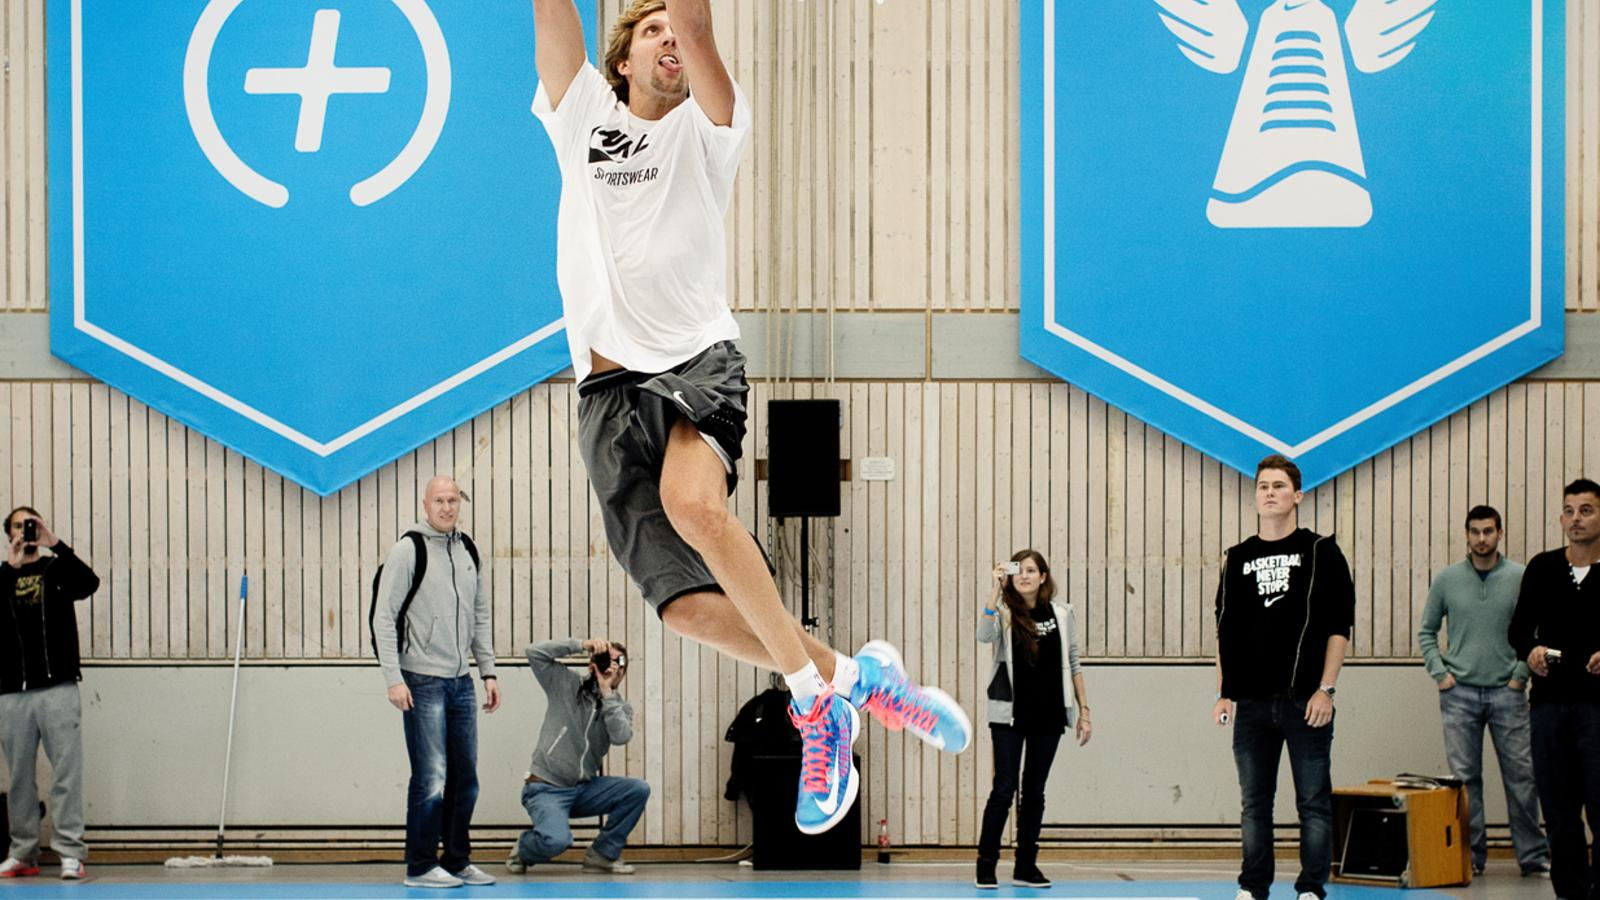 Dirk_Nowitzki_Berlin5on5d